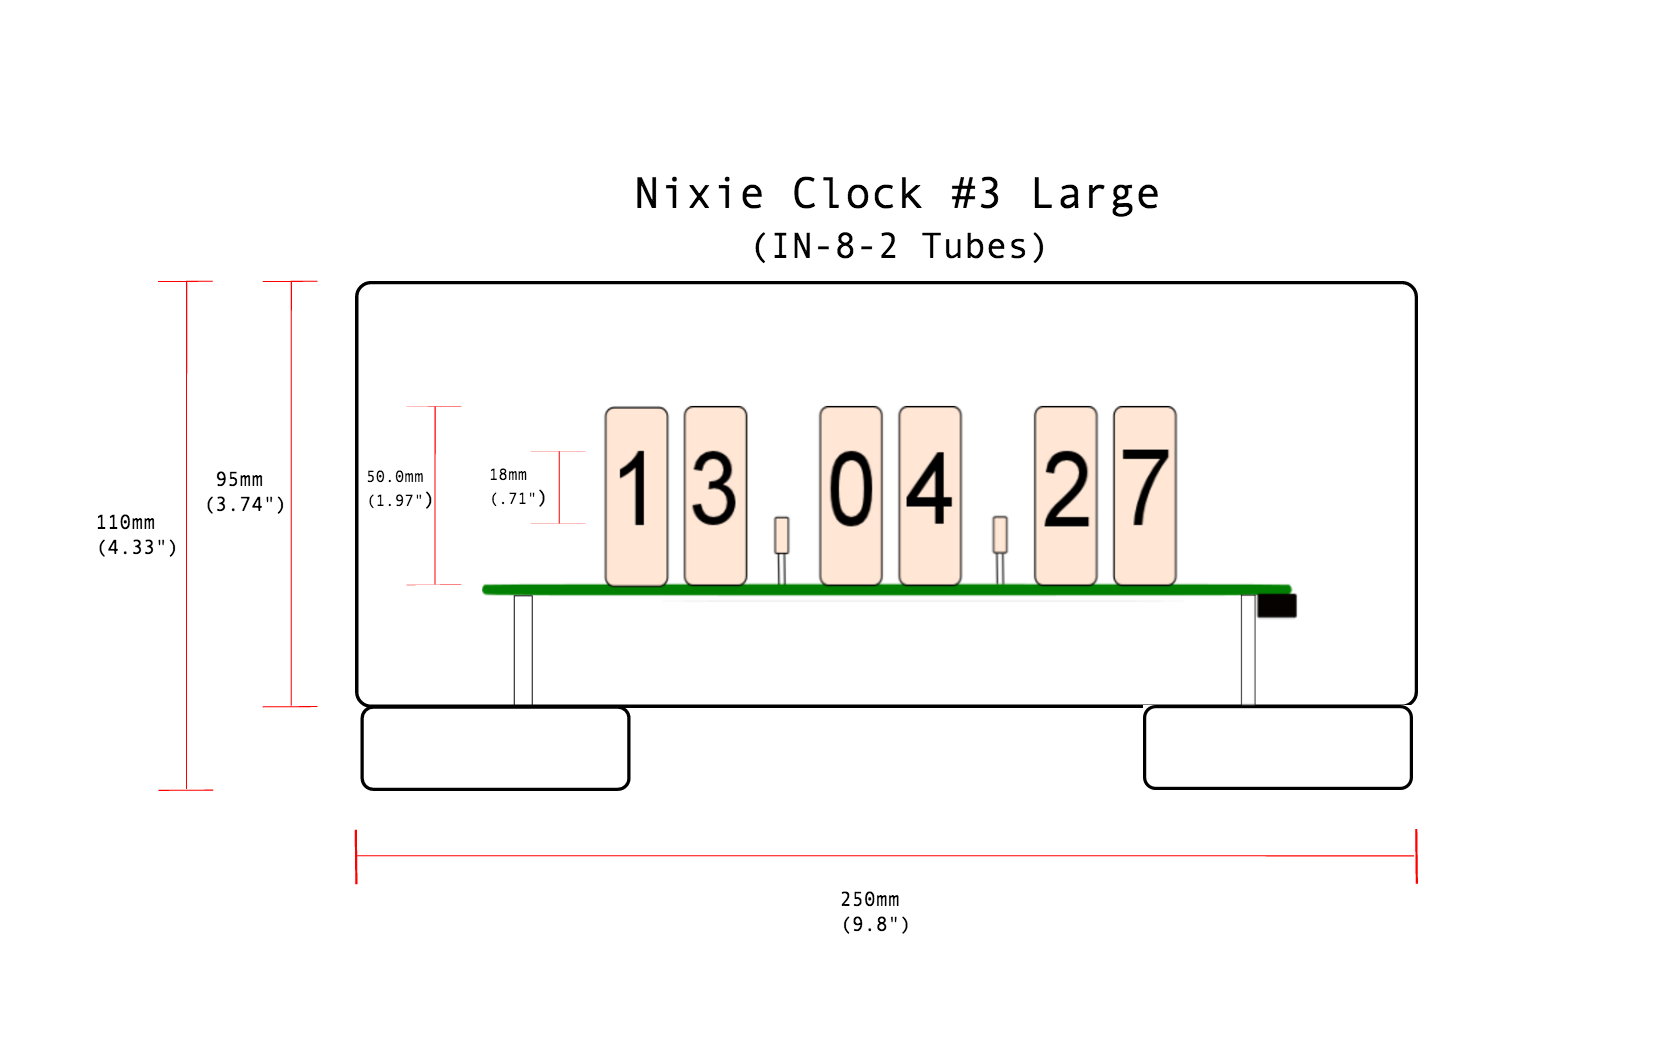 Buy A Custom Made Glass Nixie Clock In 8 2 Model To Order From Circuit Diagrams Cold War Creations